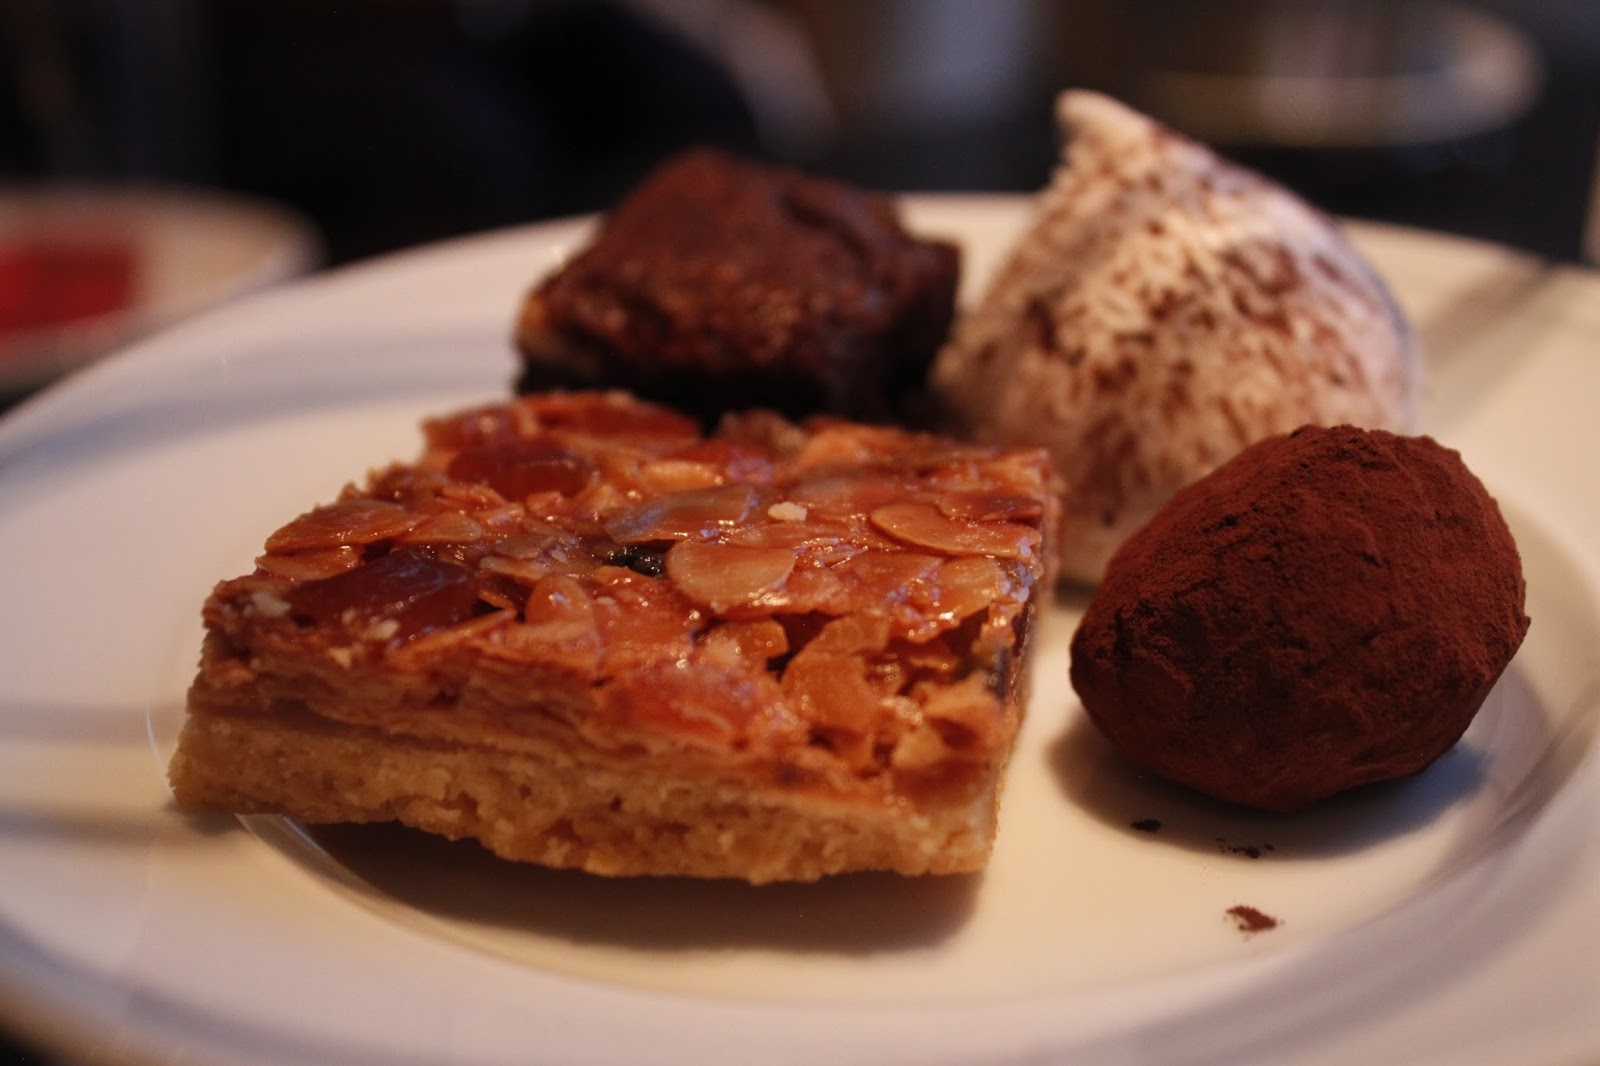 Afternoon tea at Bluesoon, Amsterdam- Pecan pie, chocolate truffle and cakes.